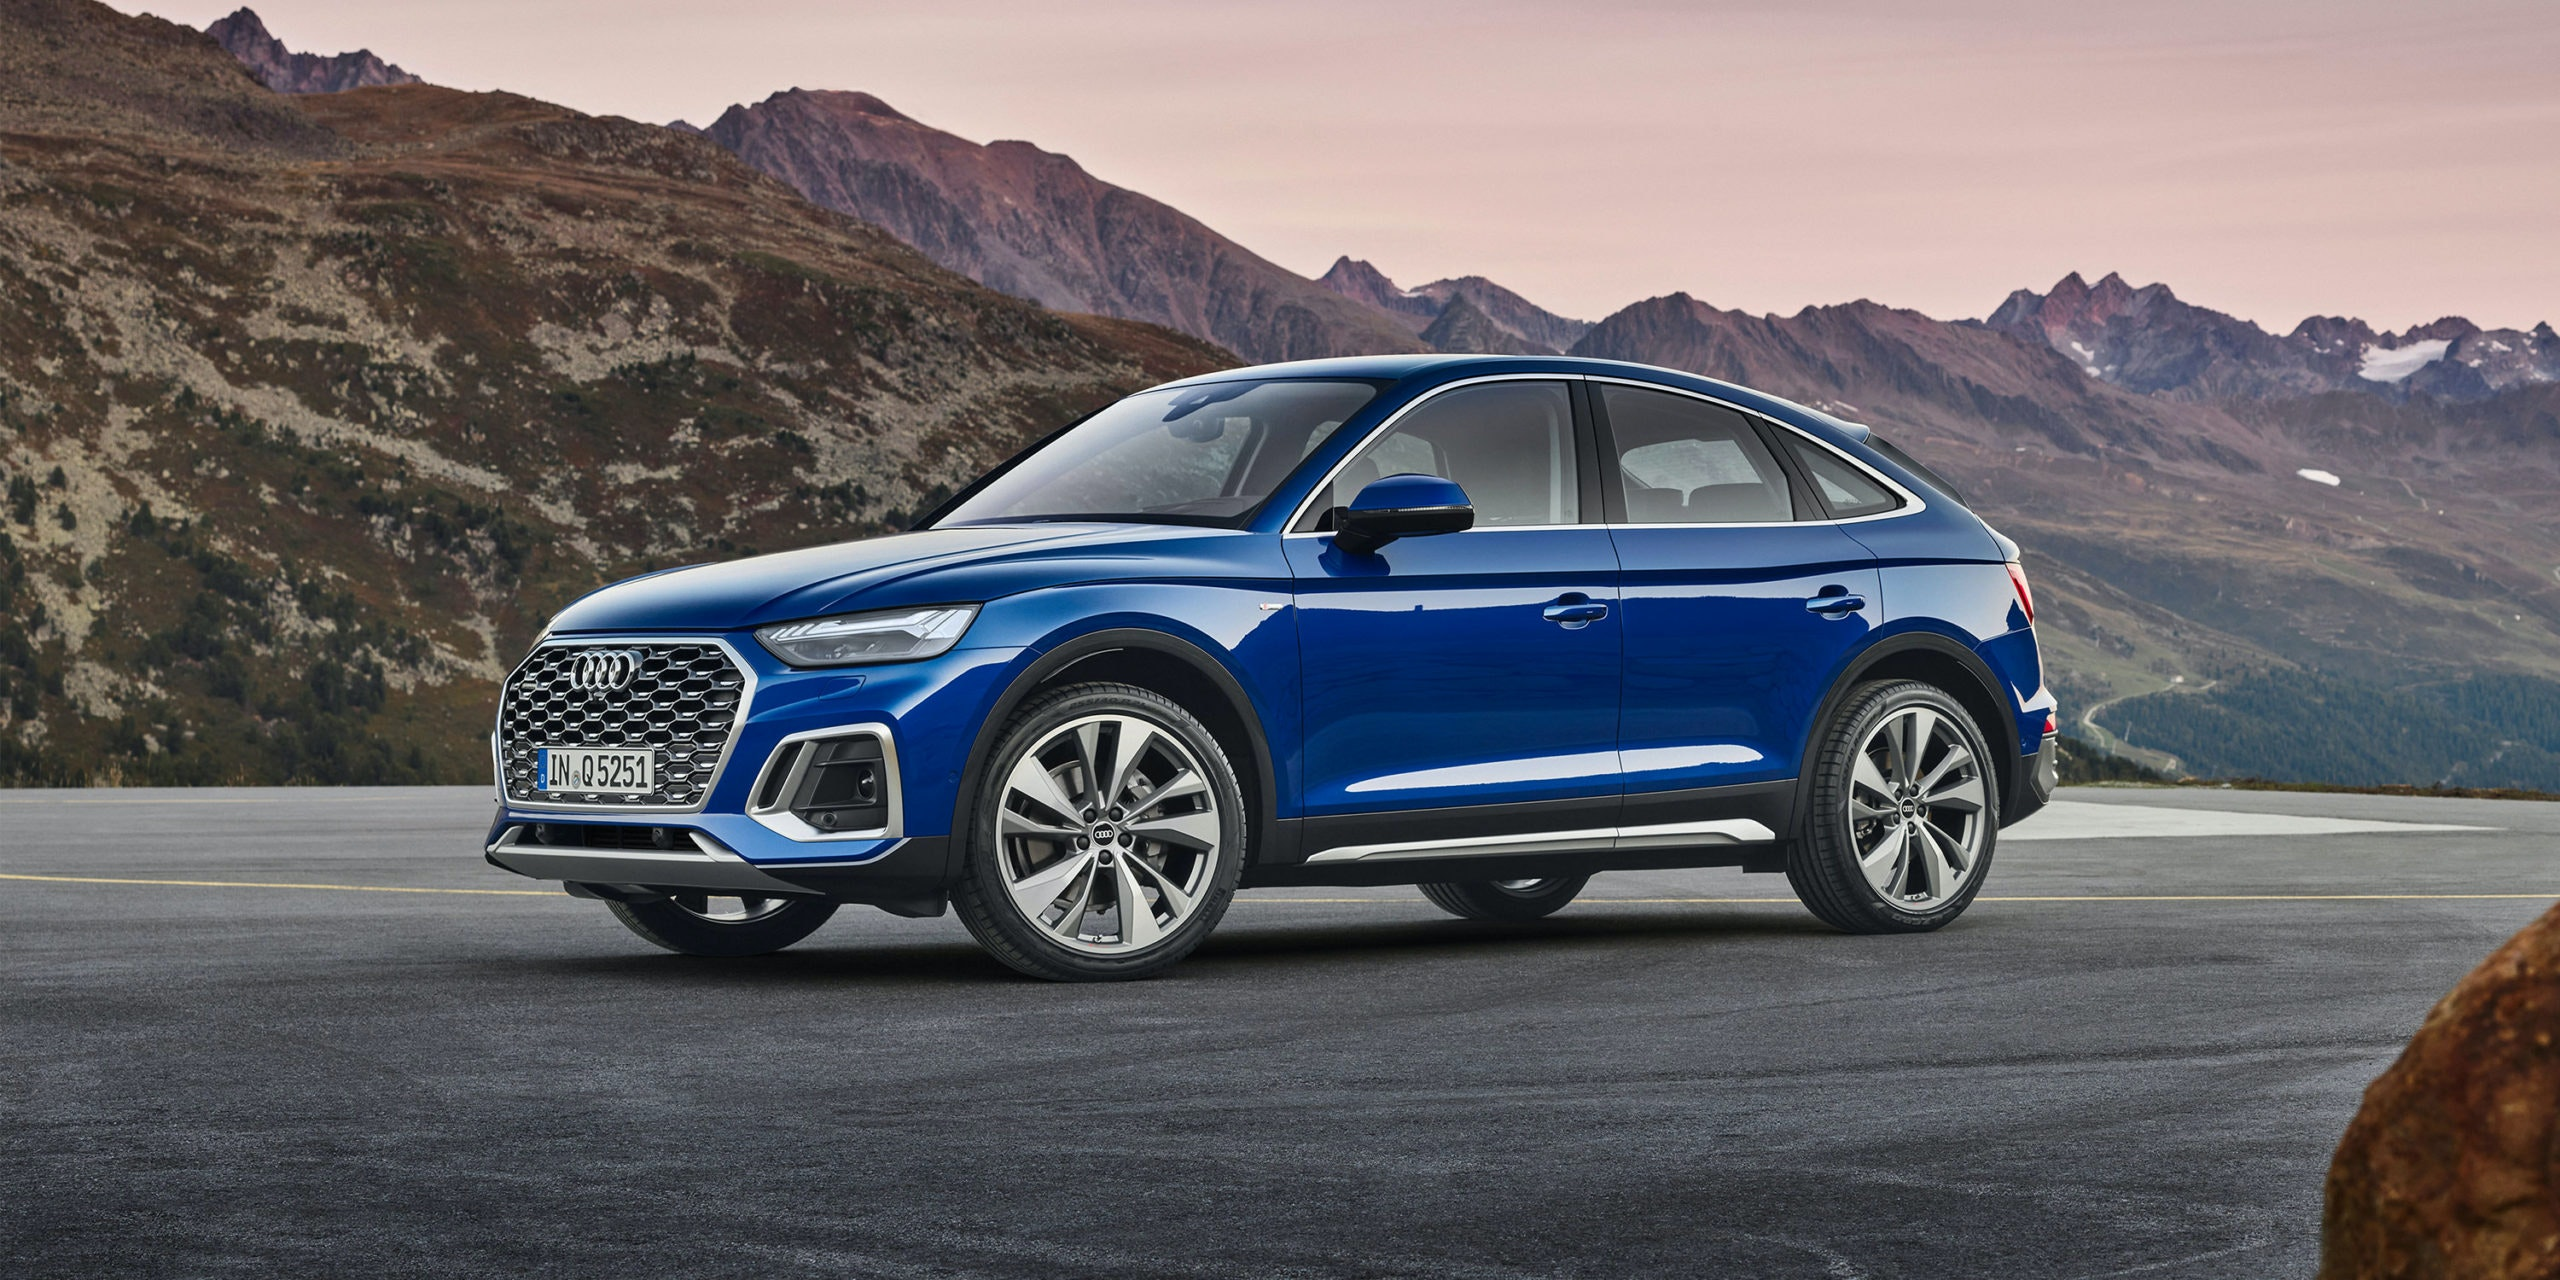 New 2021 Audi Q5 Sportback Revealed Price Specs And Release Date Carwow